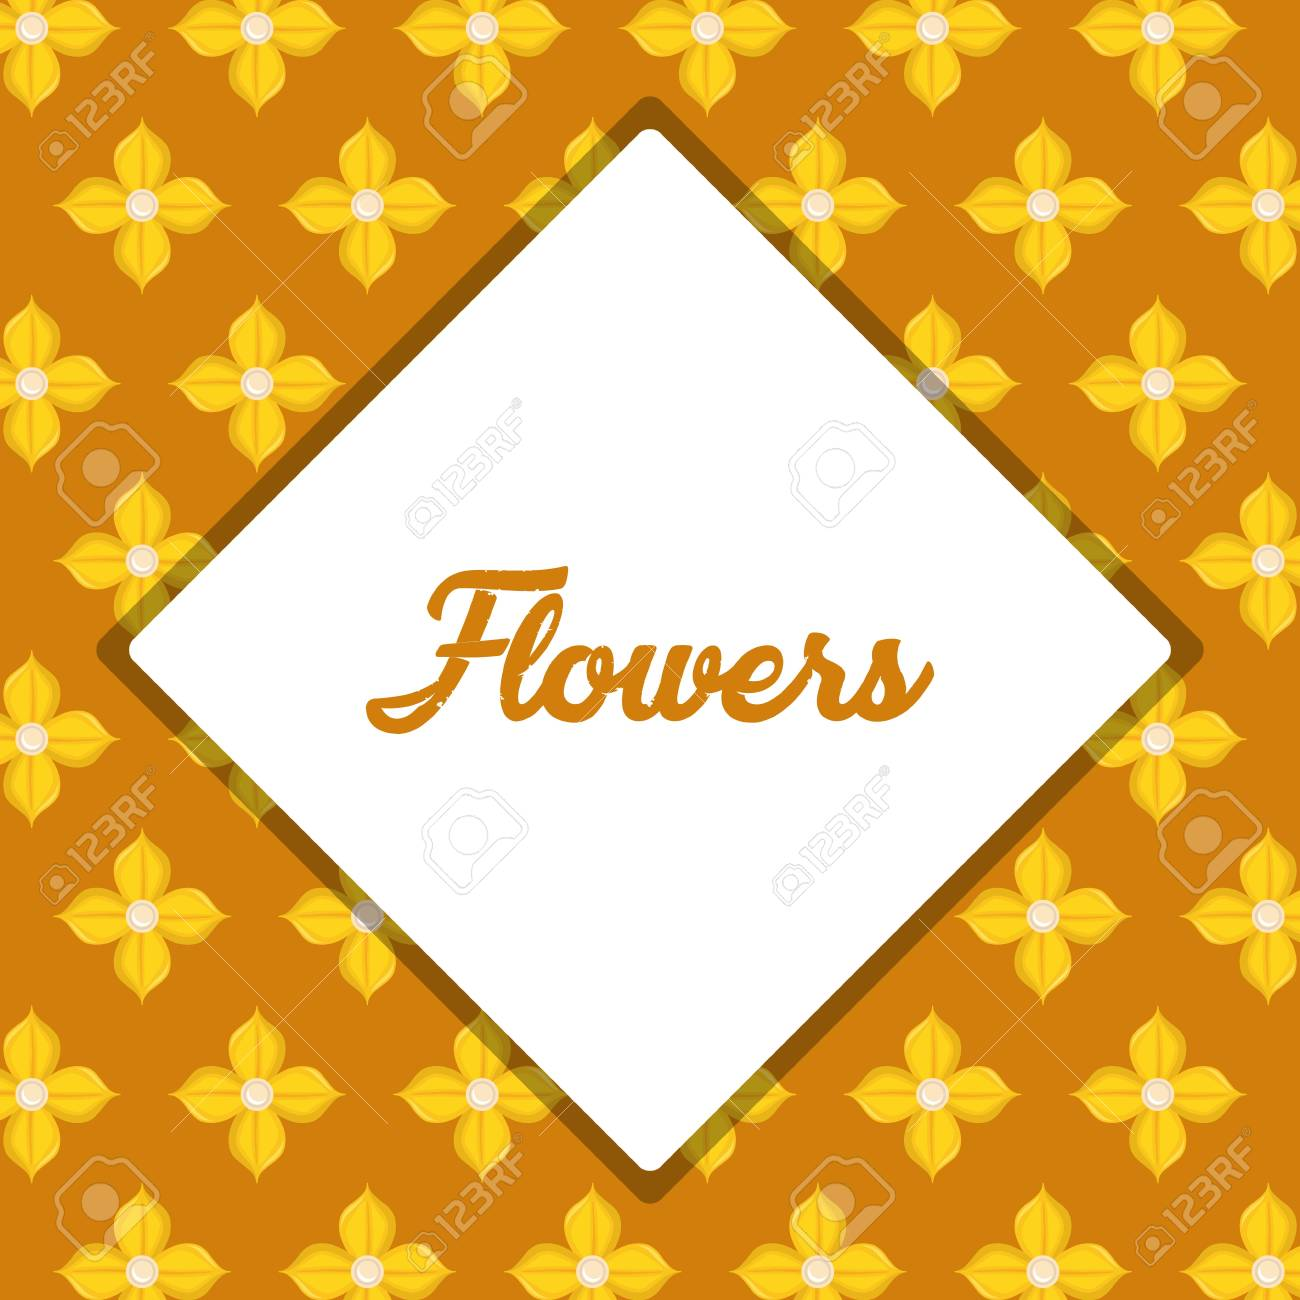 Beautiful Yellow Flowers Background Design With And Rhombus Frame